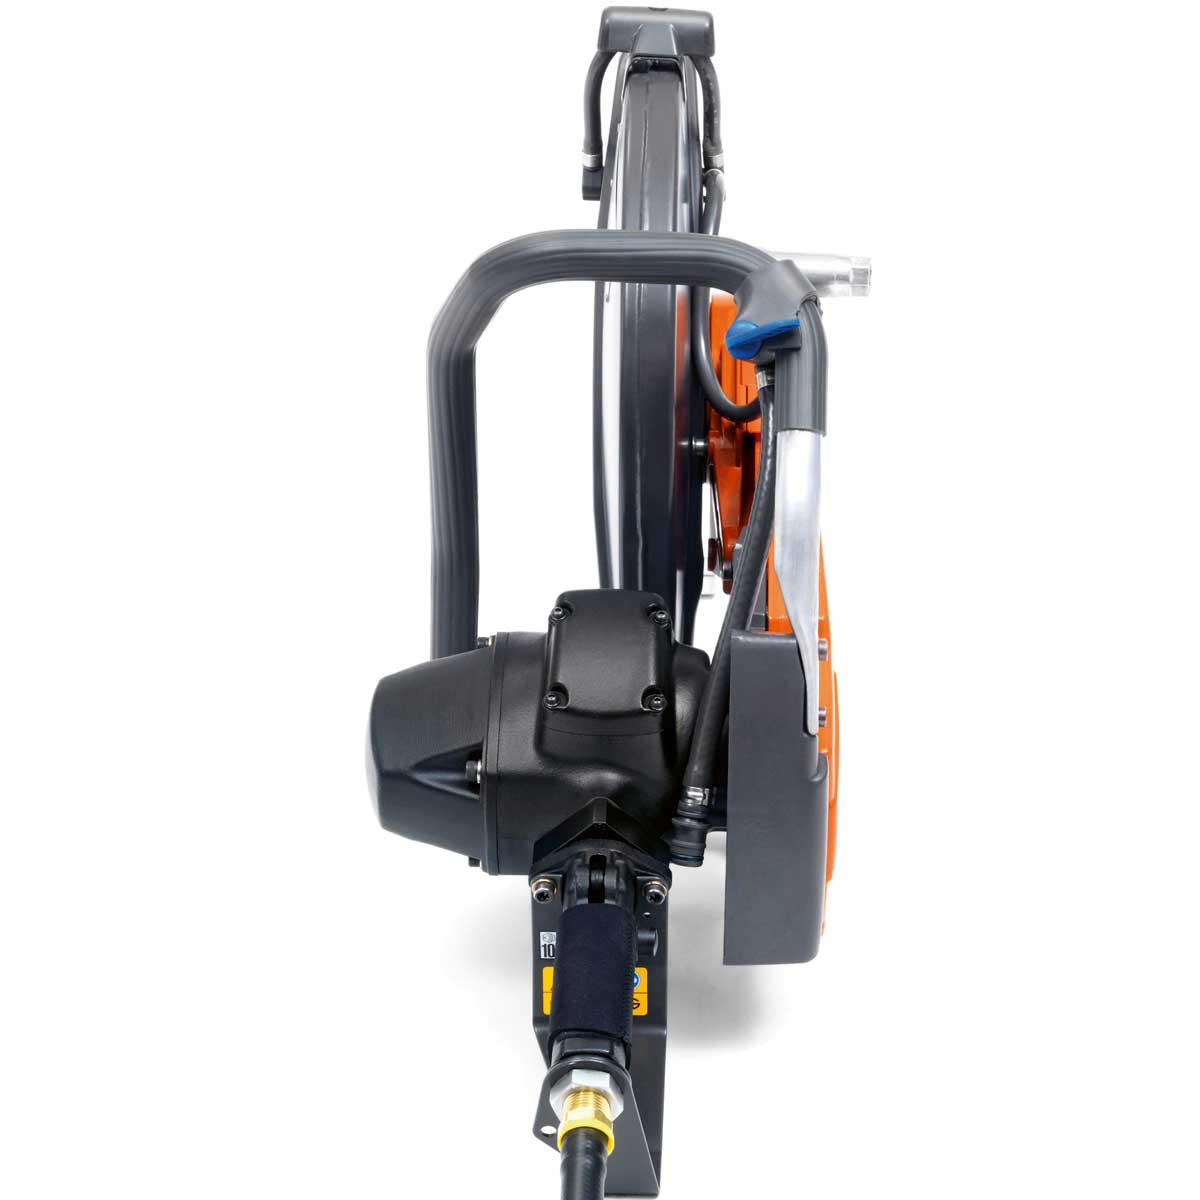 Husqvarna K40 Air drive Saw